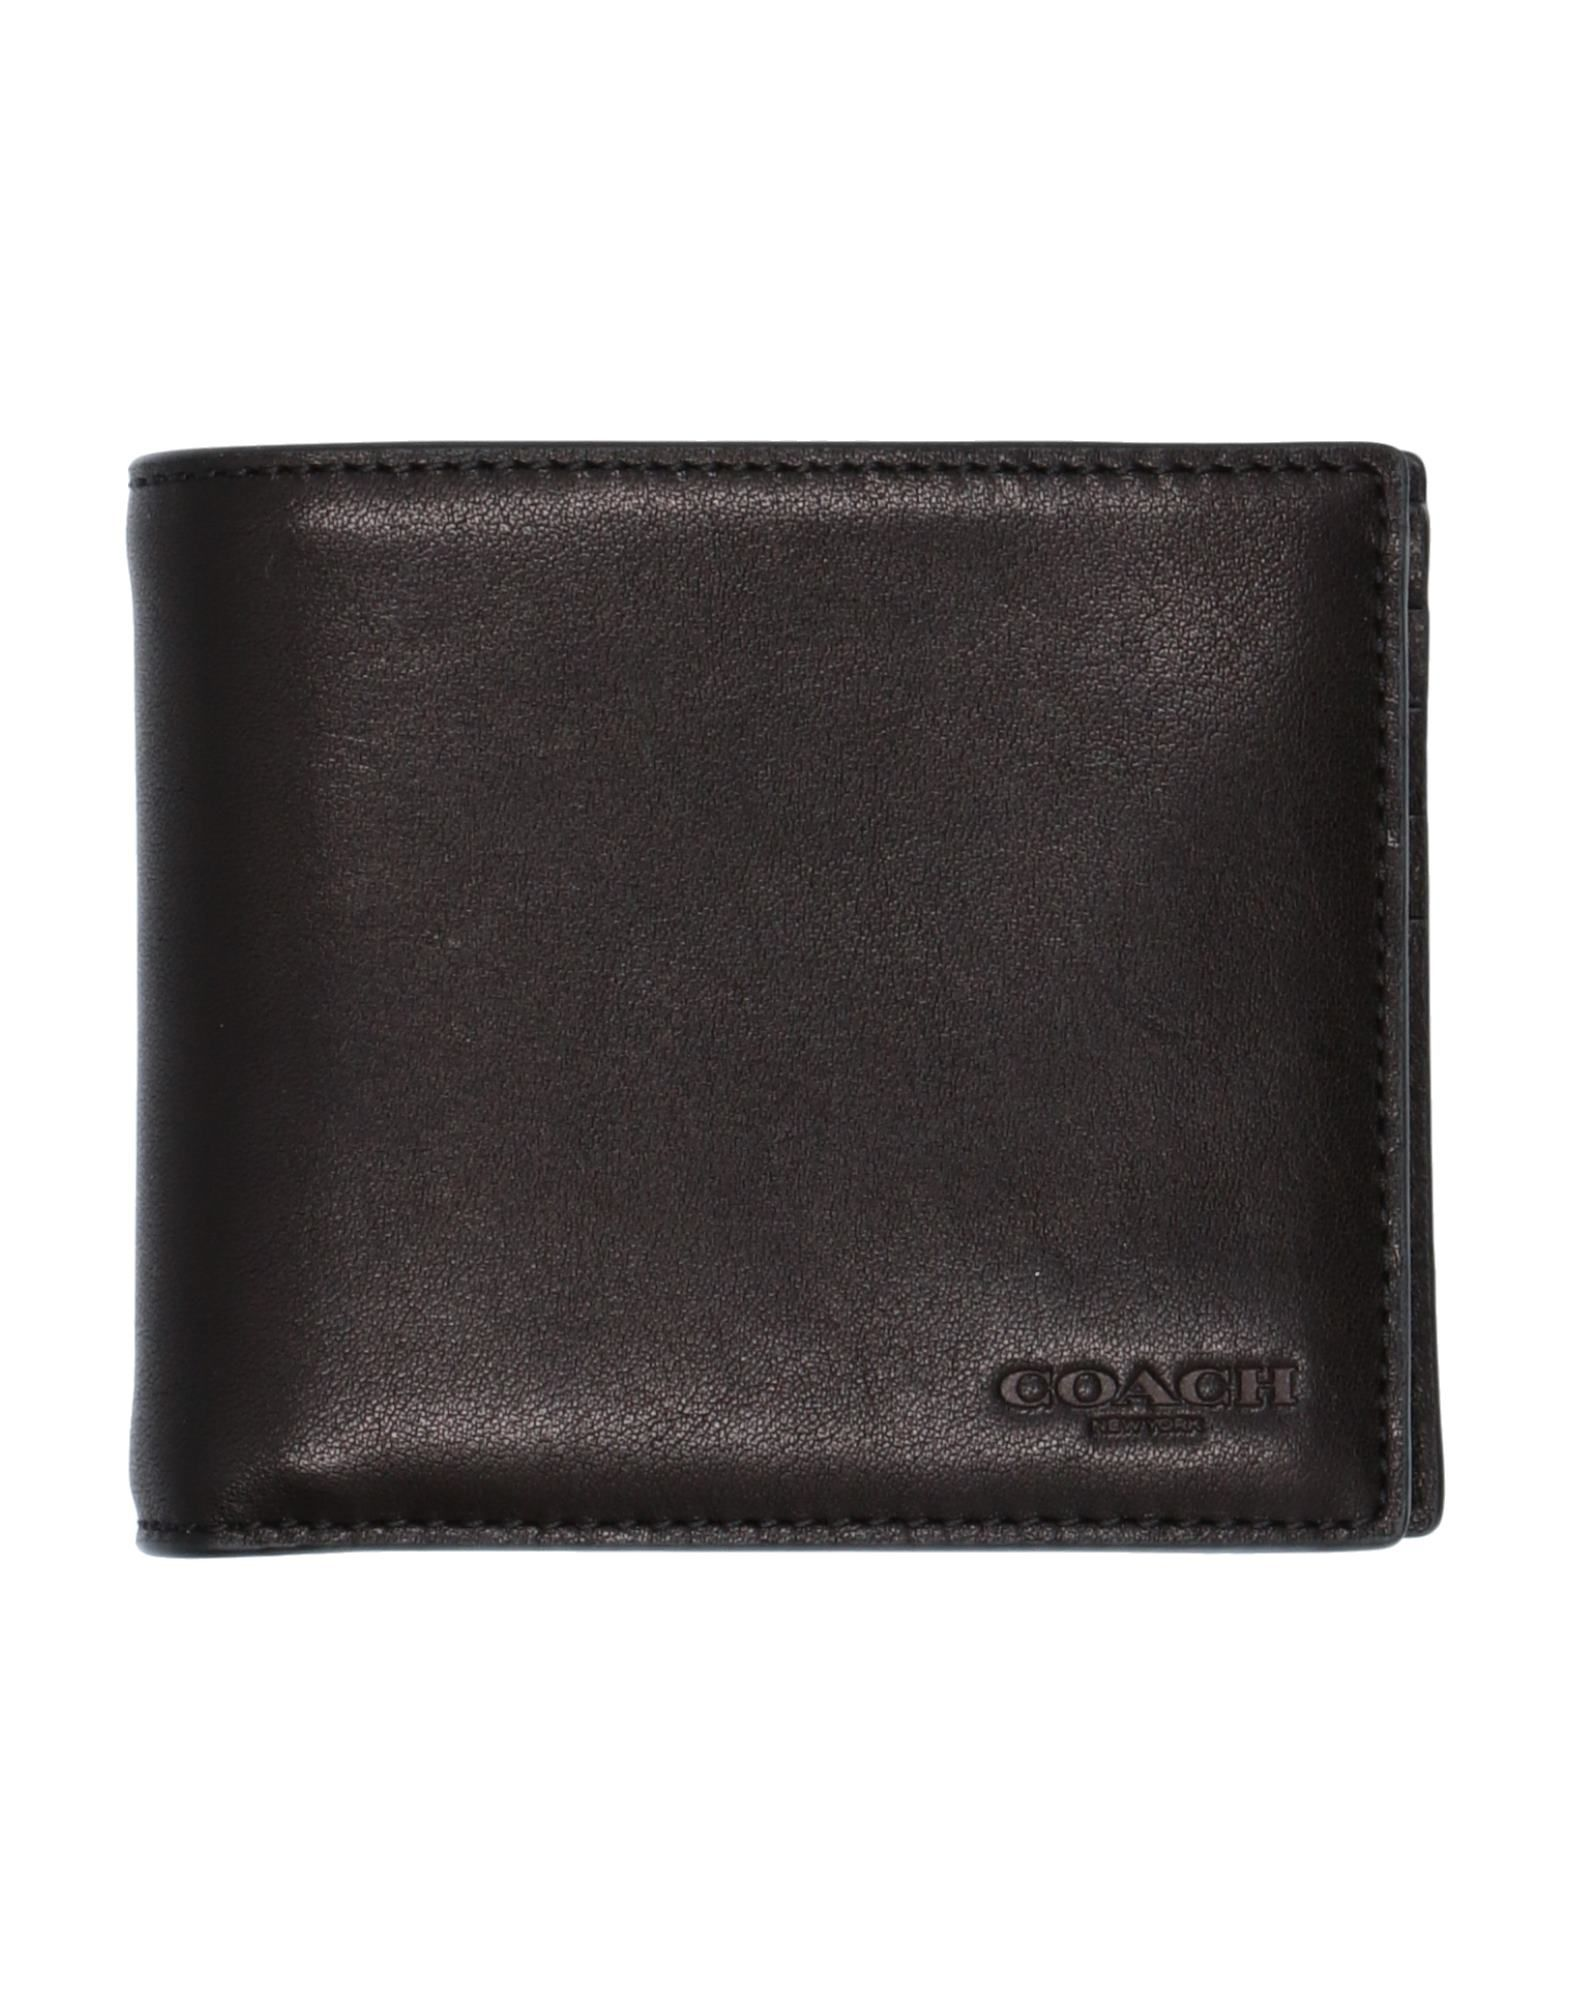 wholesale dealer c04cc 2b1f2 コーチ(COACH) メンズ 財布 - 価格.com